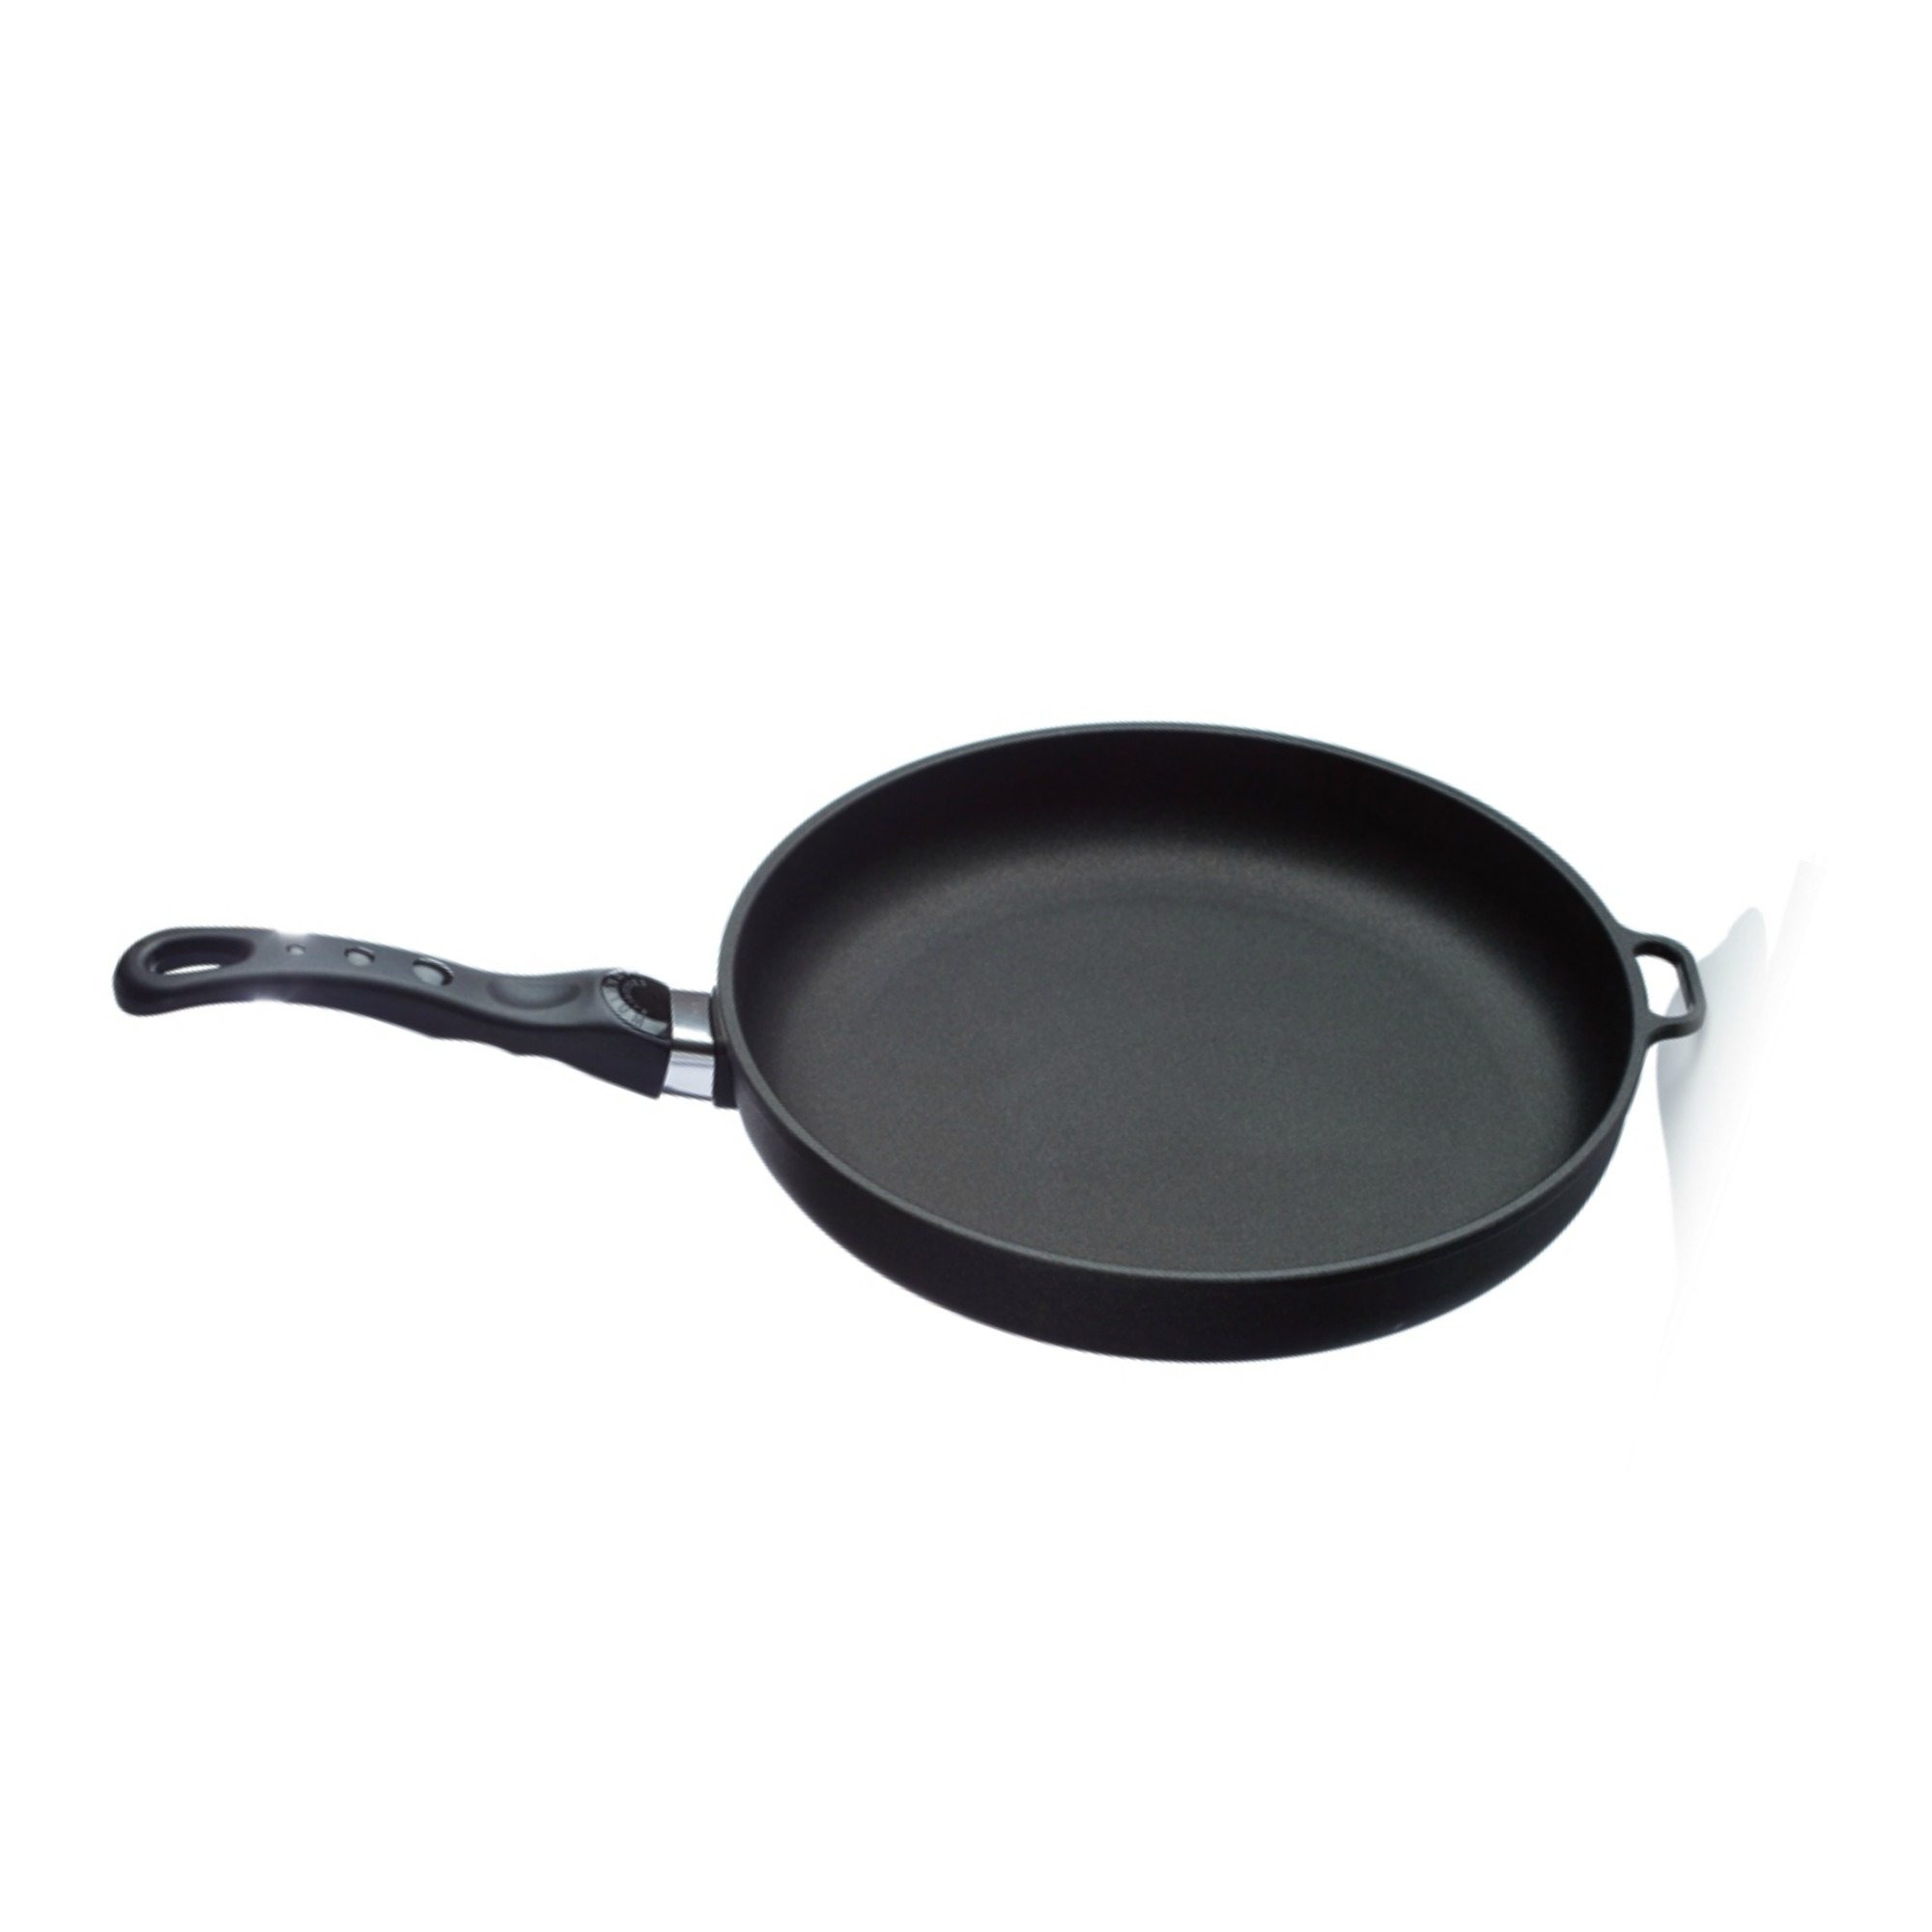 LOW RIM FRYING PAN 28x5    This 28x5cm size is great for cooking medium to larger sized dishes. Young Living's titanium pans are premium cookware products that cook evenly without sticking, won't warp or lose their shape, and don't have Teflon coating. The titanium coating allows you to cook with little or no fat and is non-porous. The bases are made of cast aluminum, which conducts heat seven times faster than iron or steel. The patented handles have no screws or rivets to loosen and fall off. All handles, lids, and knobs are ovenproof up to 500° F.   Click here   to learn more about this product.